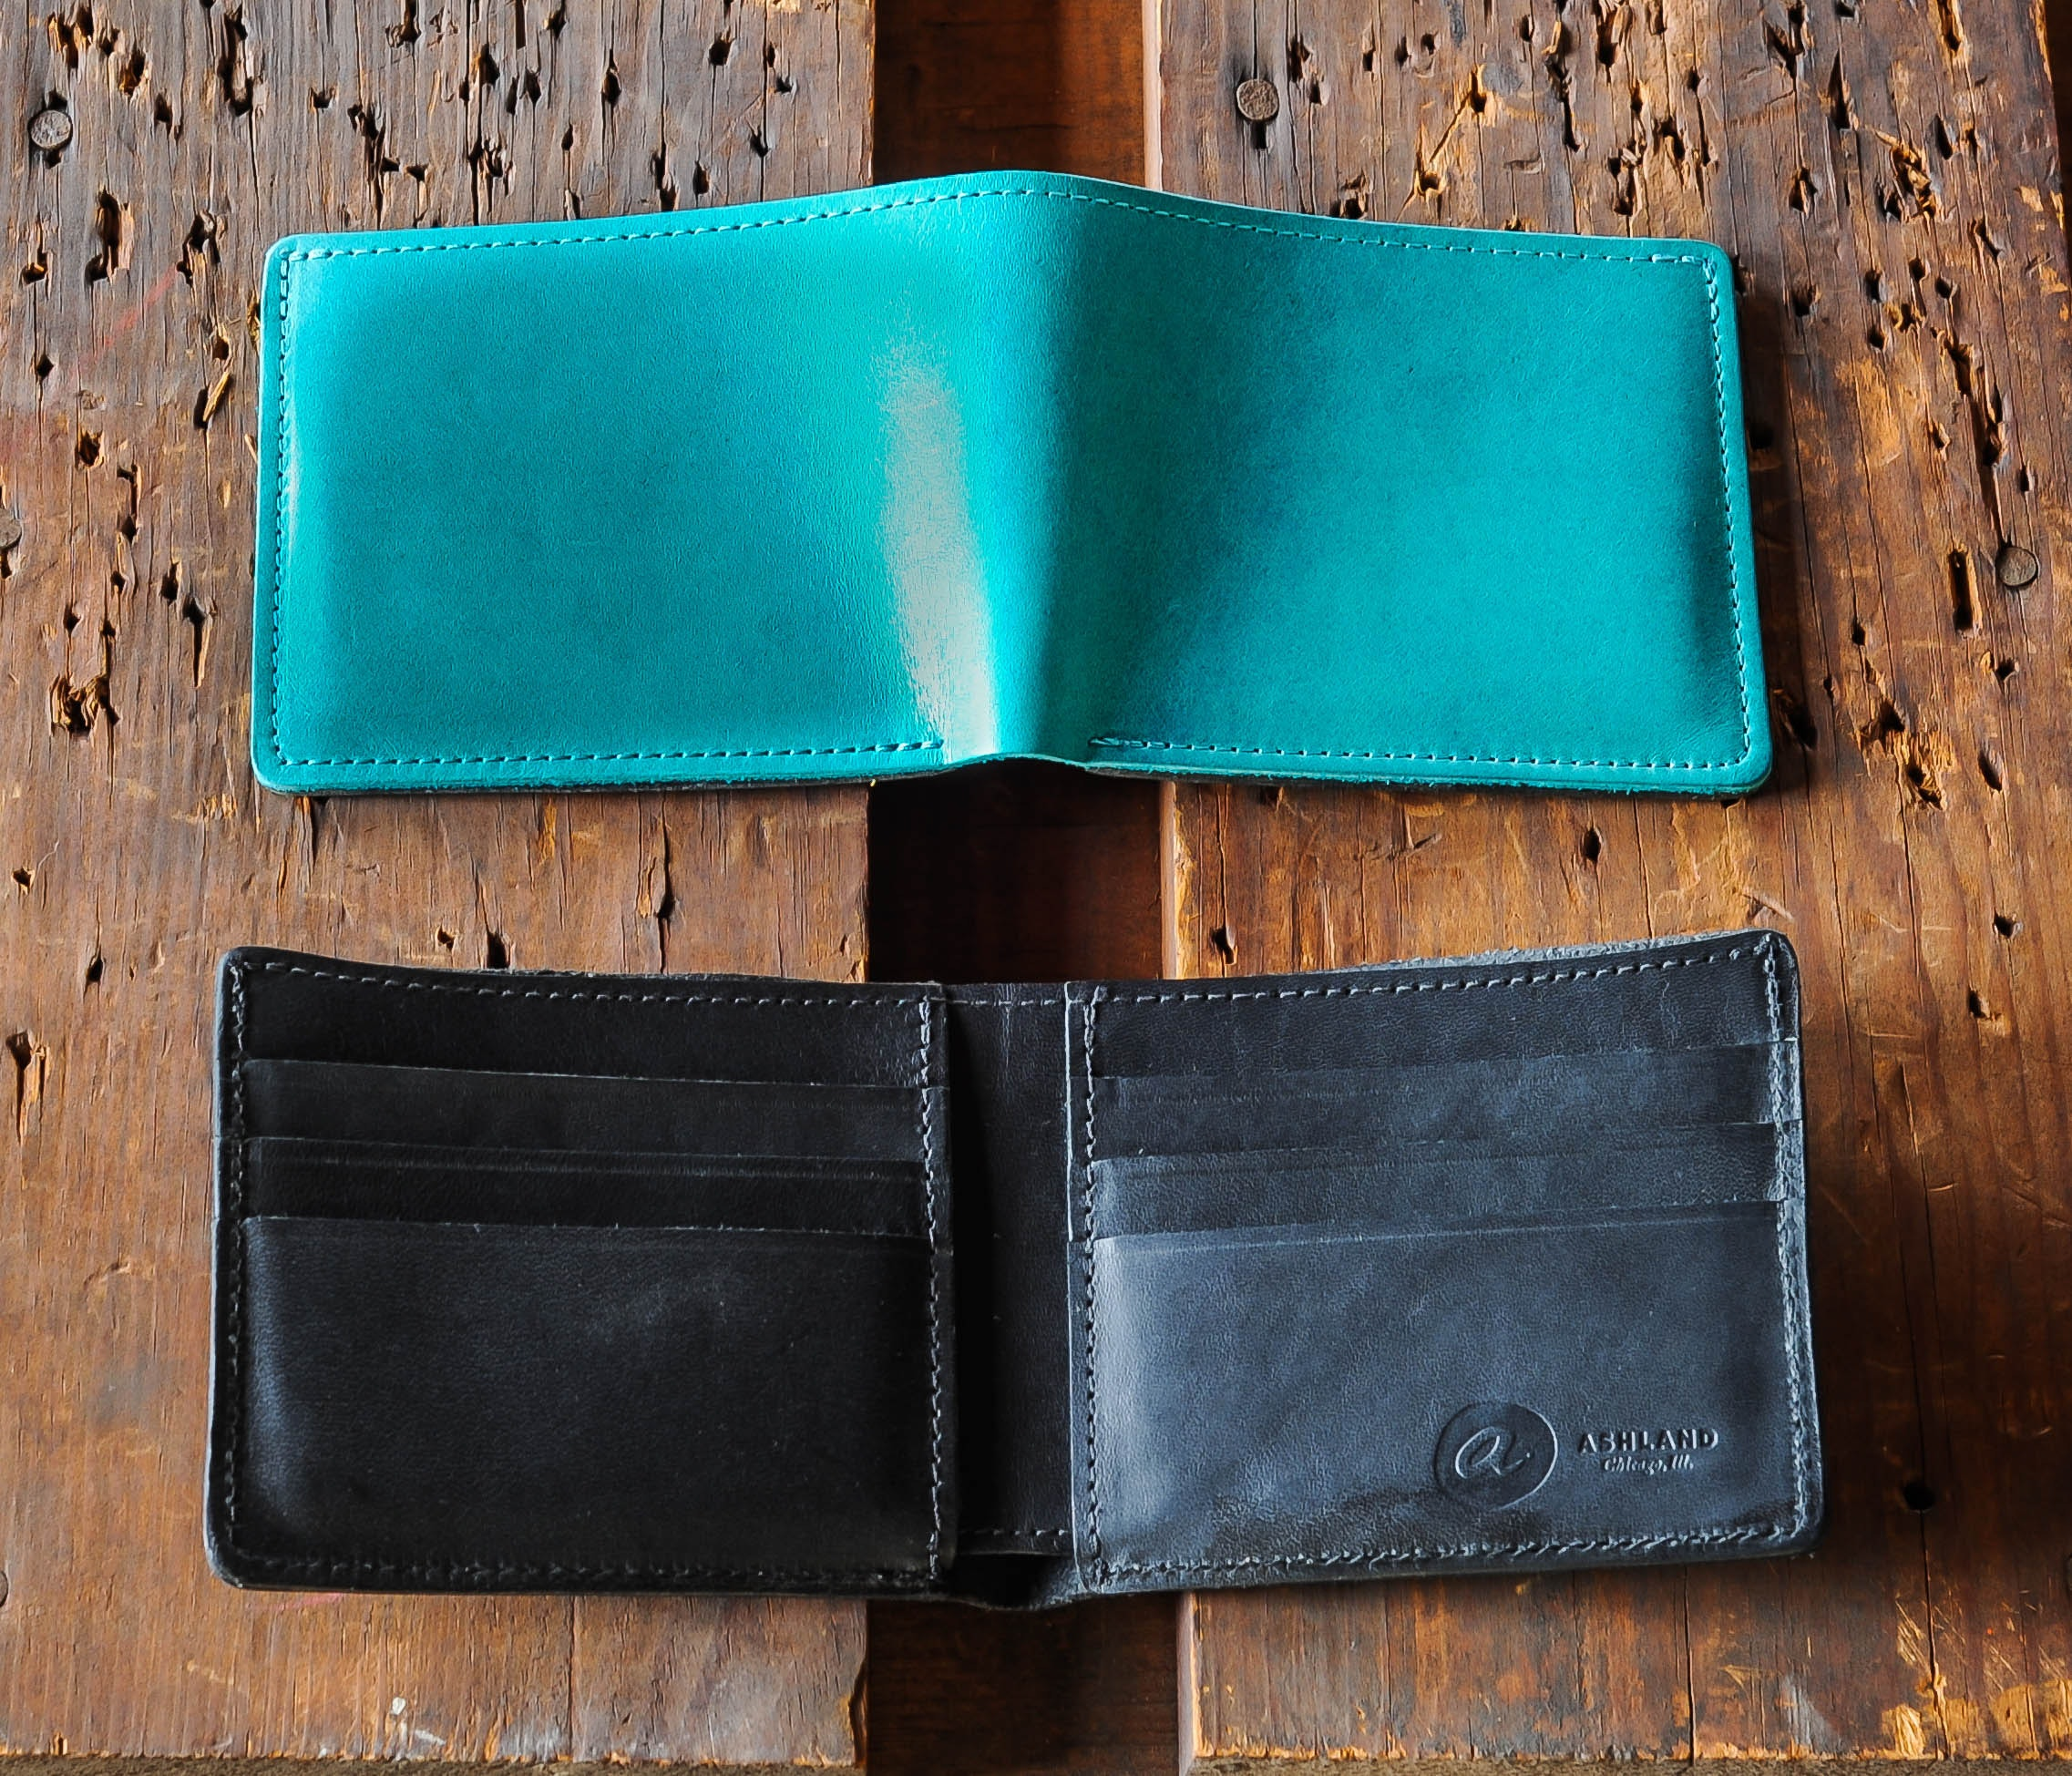 Ashland Leather 'Johnny The Fox' Teal/Black Bifold